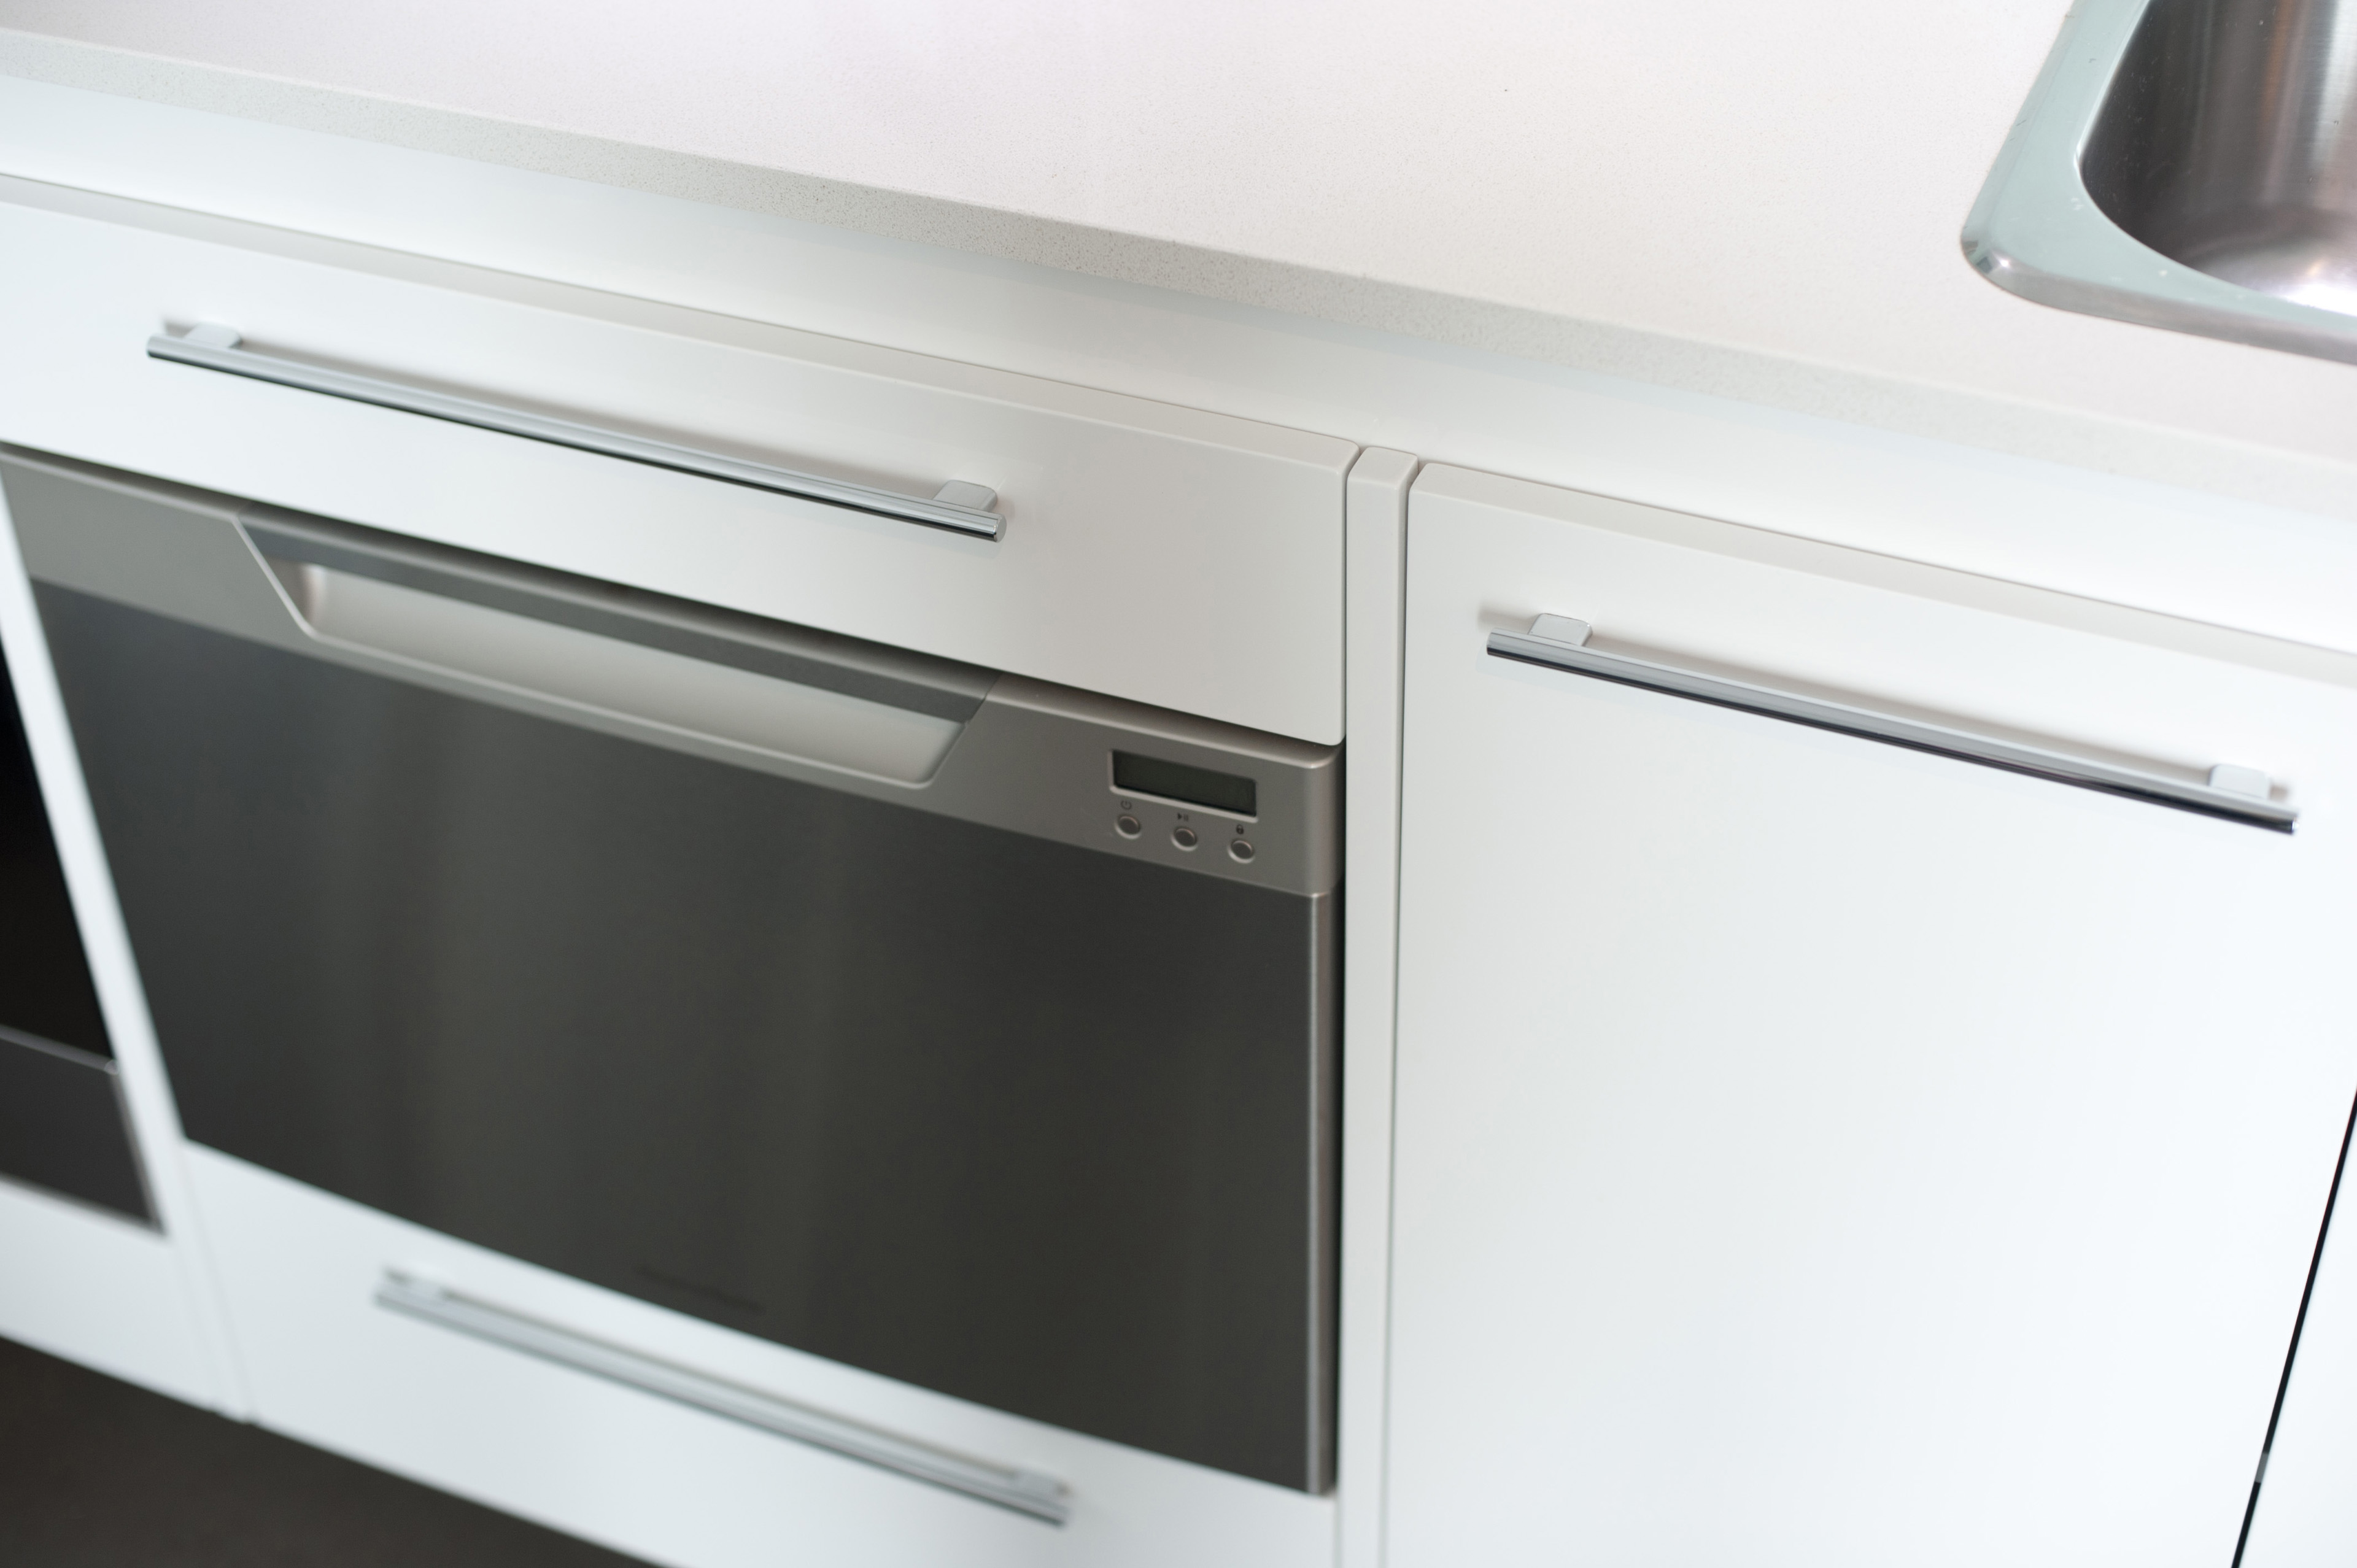 Image of Modern white fan oven | Freebie.Photography